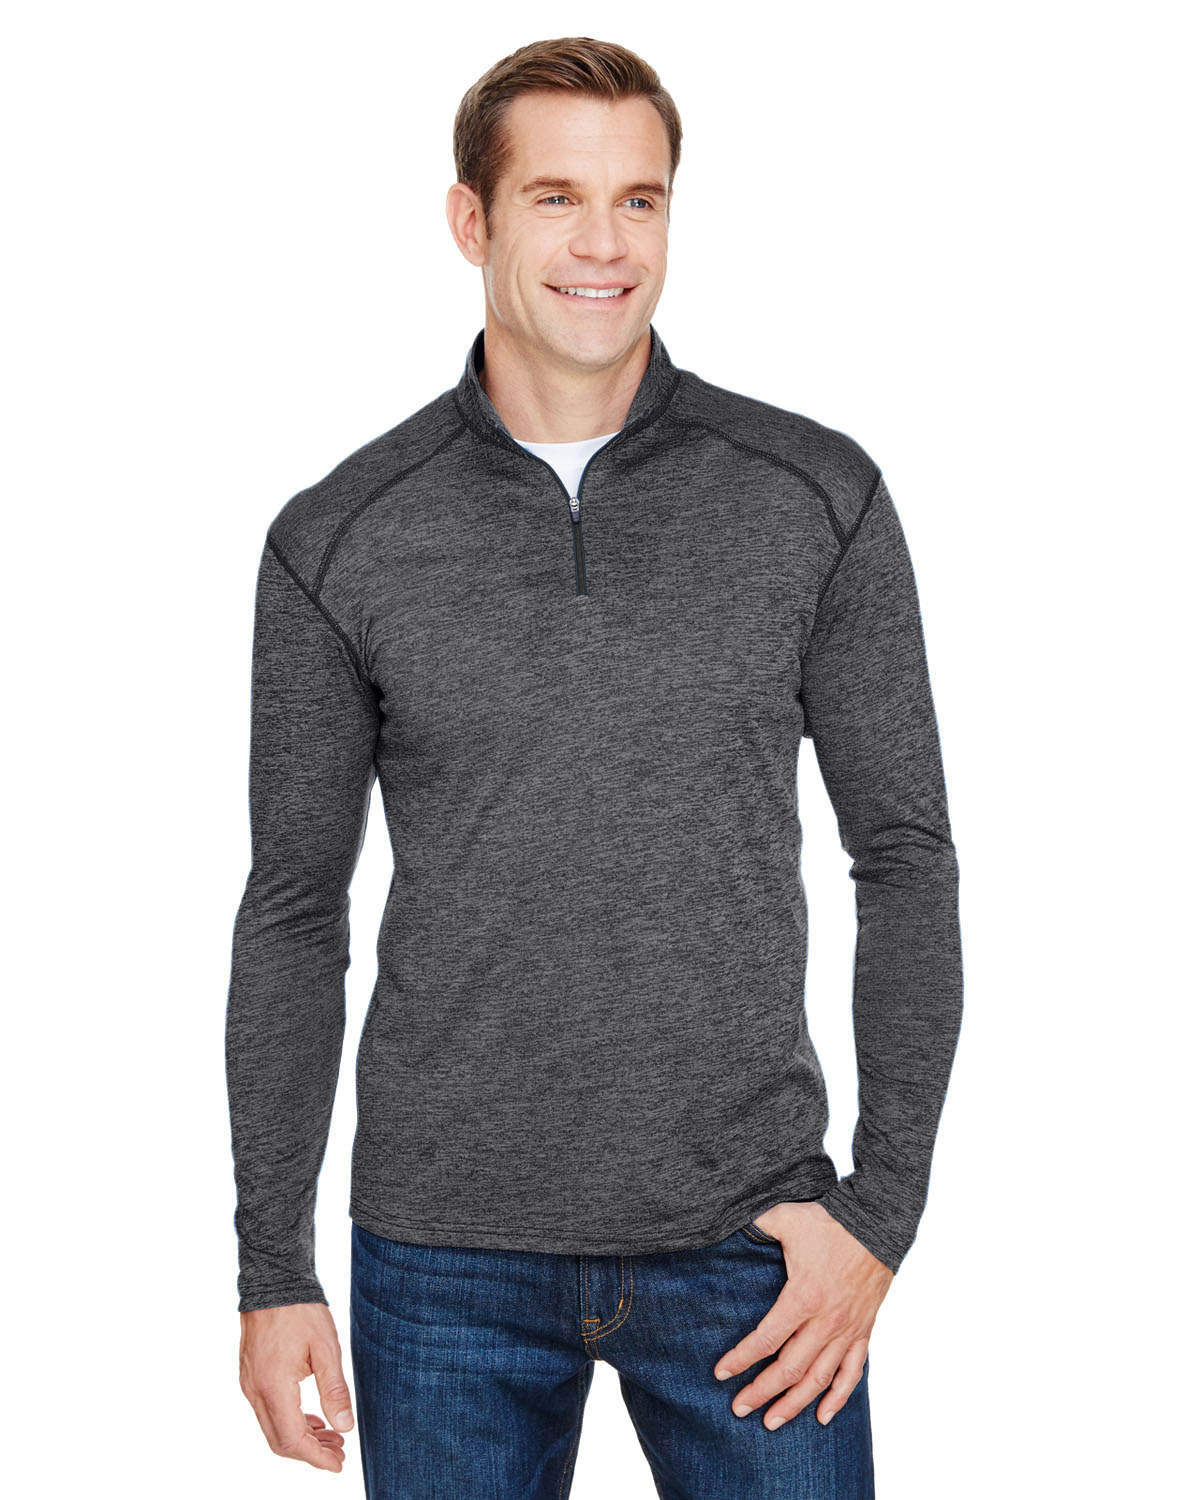 A4 N4010 Men's Tonal Space-Dye Quarter-Zip